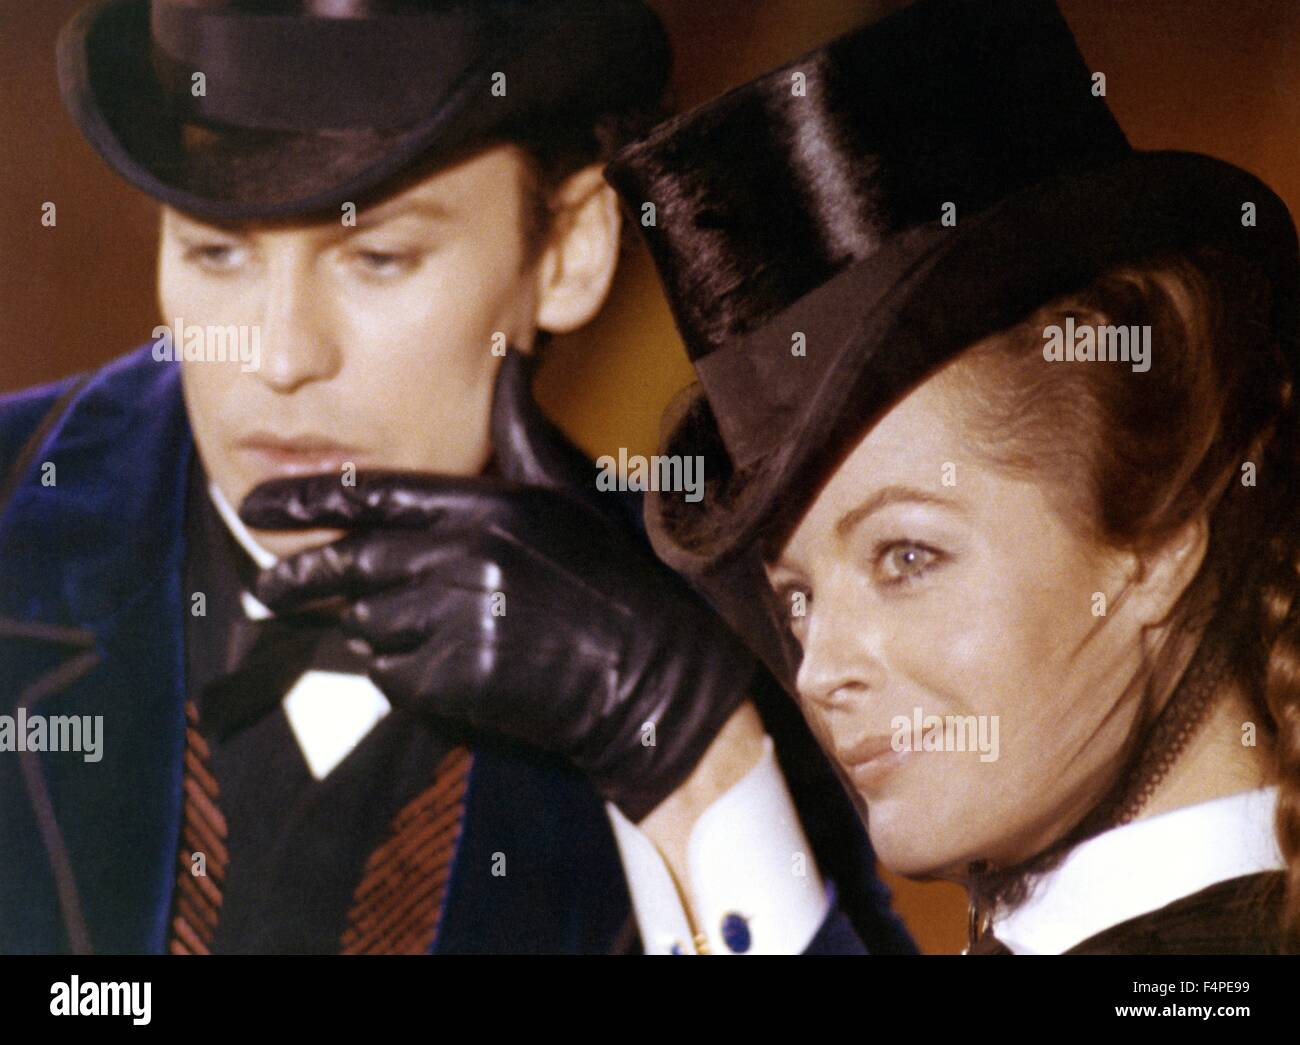 Helmut Berger and Romy Schneider / Ludwig : The Mad King of Bavaria / 1972 directed by Luchino Visconti Stock Photo